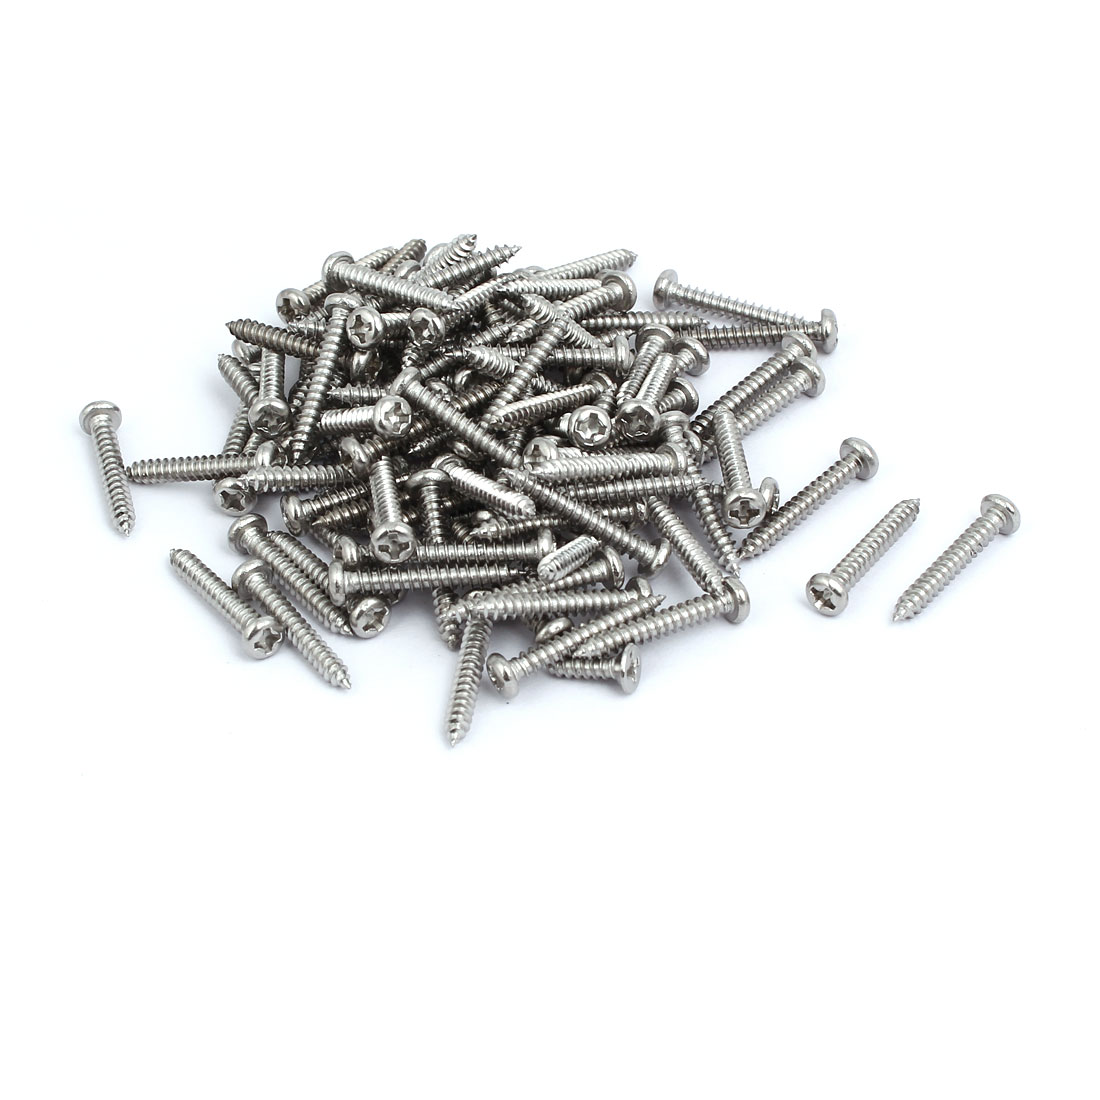 M3x20mm 304 Stainless Steel Phillips Drive Pan Head Self Tapping Screws 100pcs